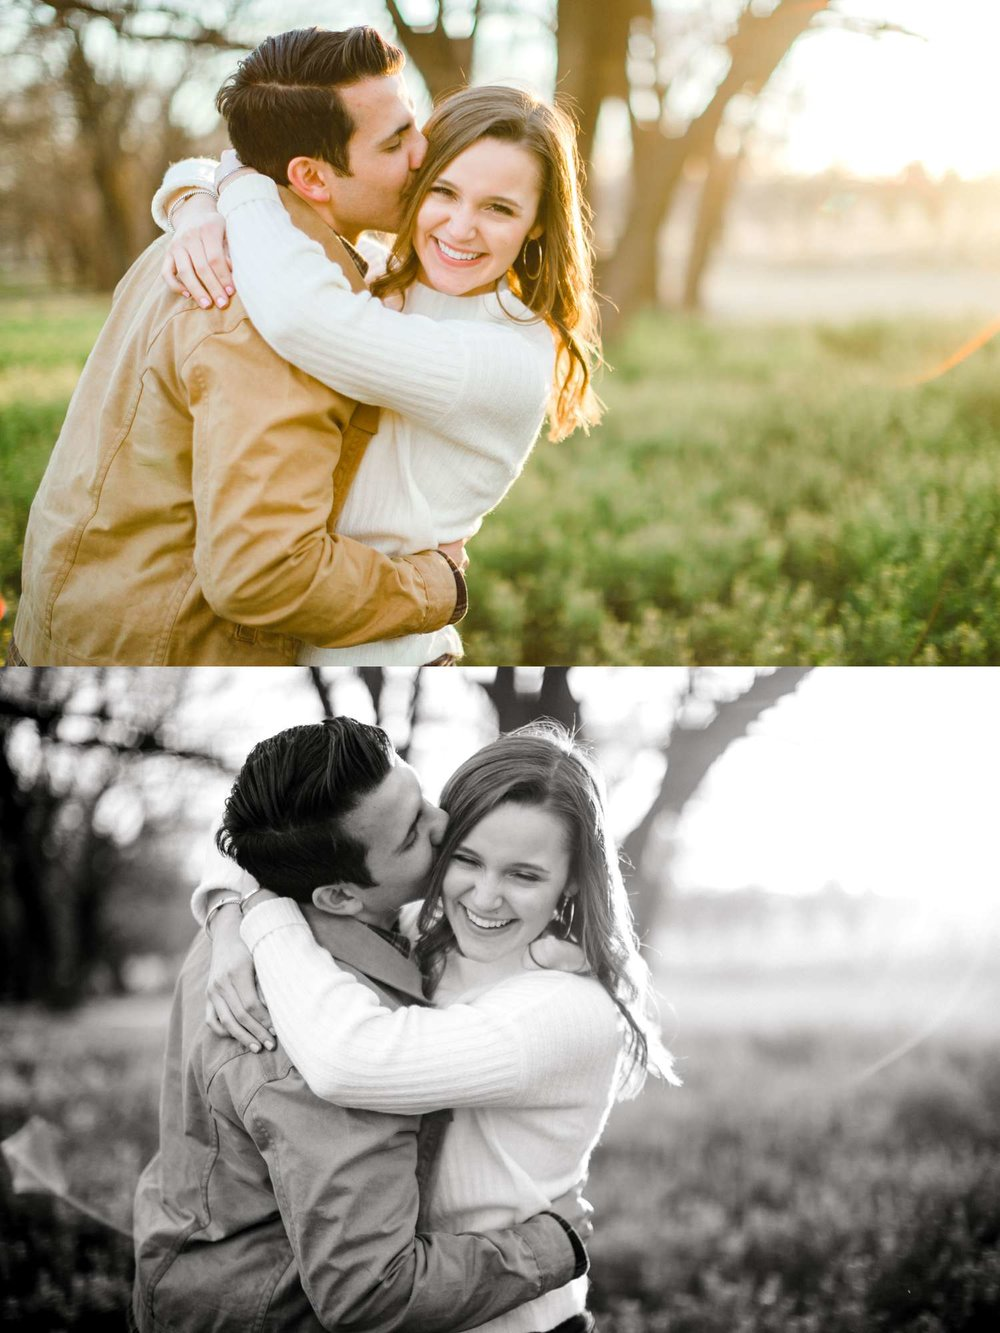 CAROLINE+CHRISTIAN+ALLEEJ+ENGAGEMENTS+LUBBOCK+WEDDING+PHOTOGRAPHER+FIRST+BAPTIST+CHURCH_0045.jpg